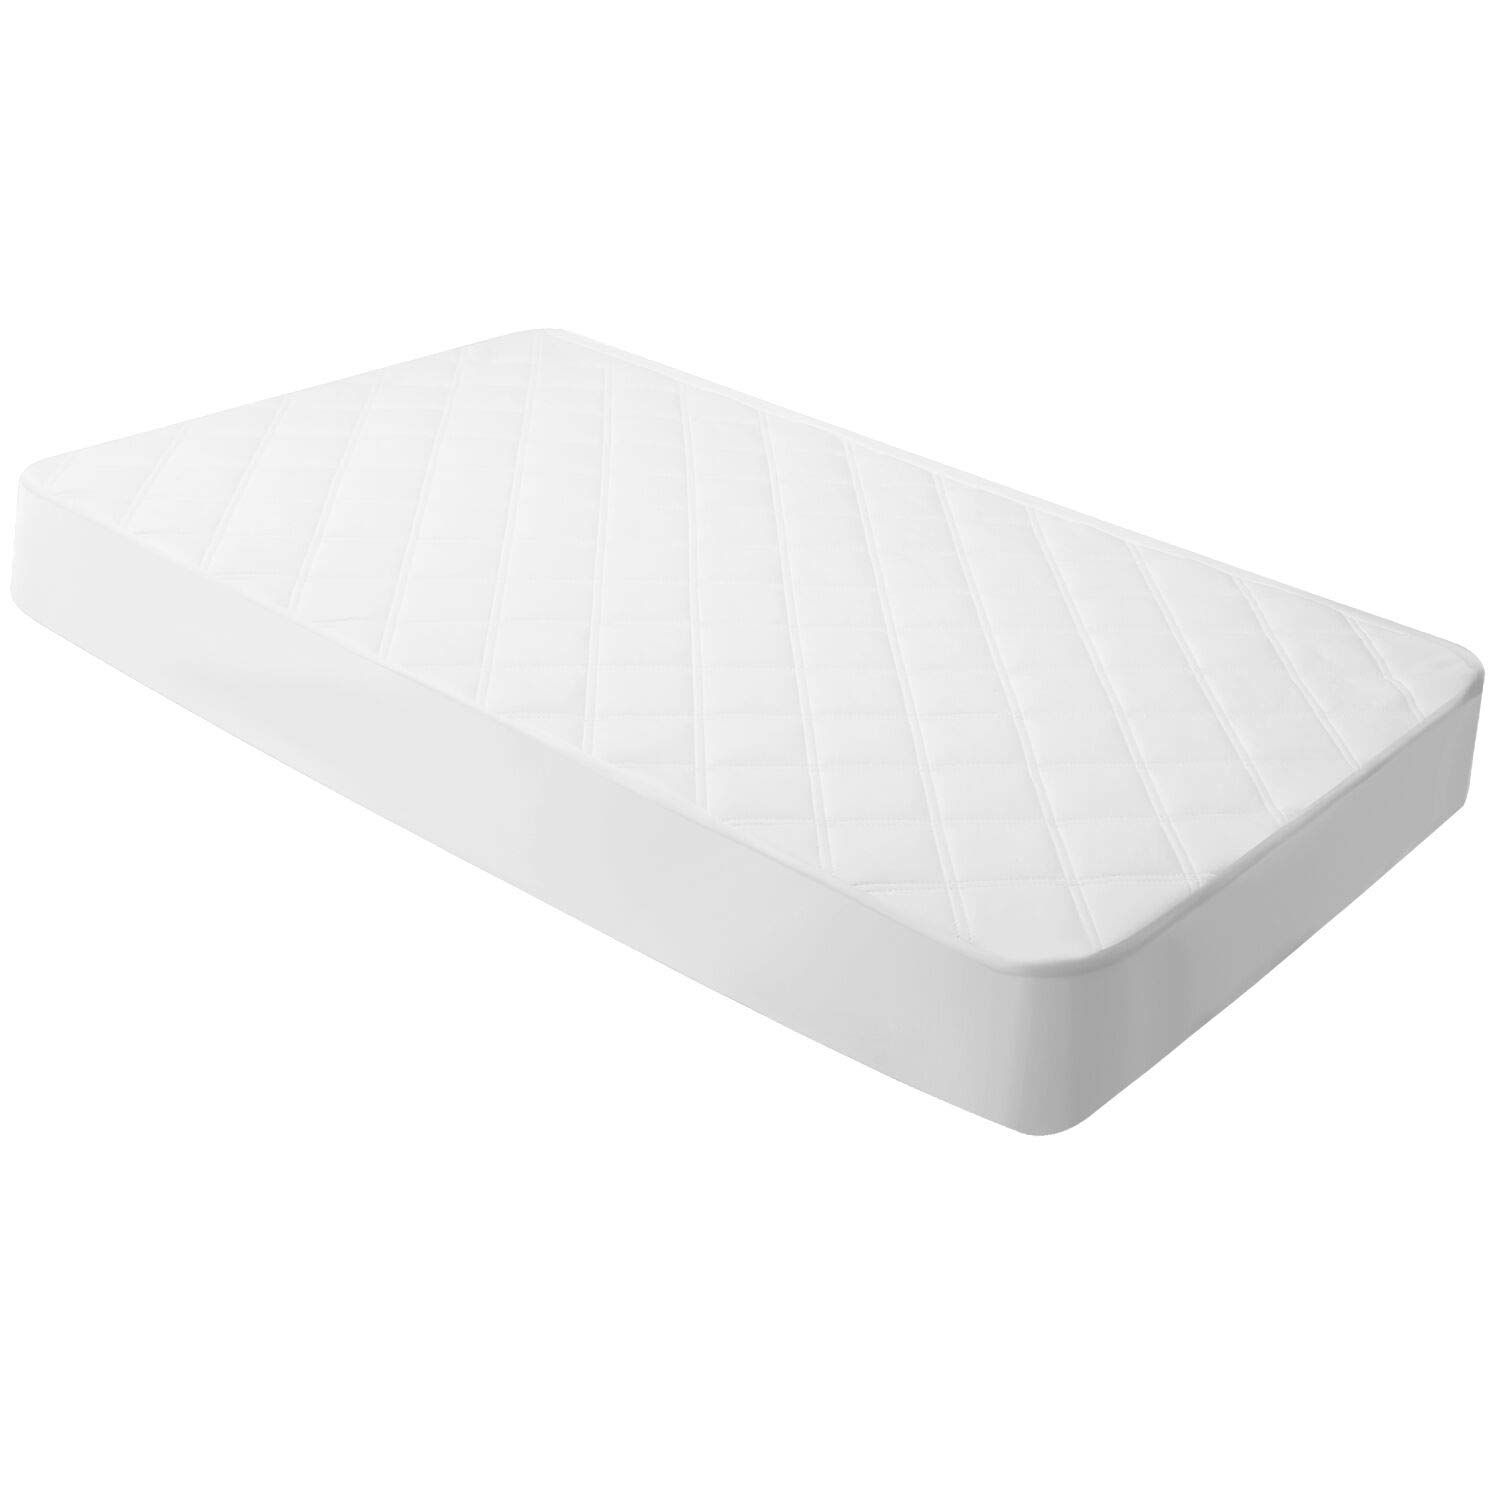 Crib Mattress Cover Waterproof Toddler Mattress Pad Protector Quilted Fitted Cover for Standard Crib 28x52inches Breathable & Hypoallergenic by YOOFOSS